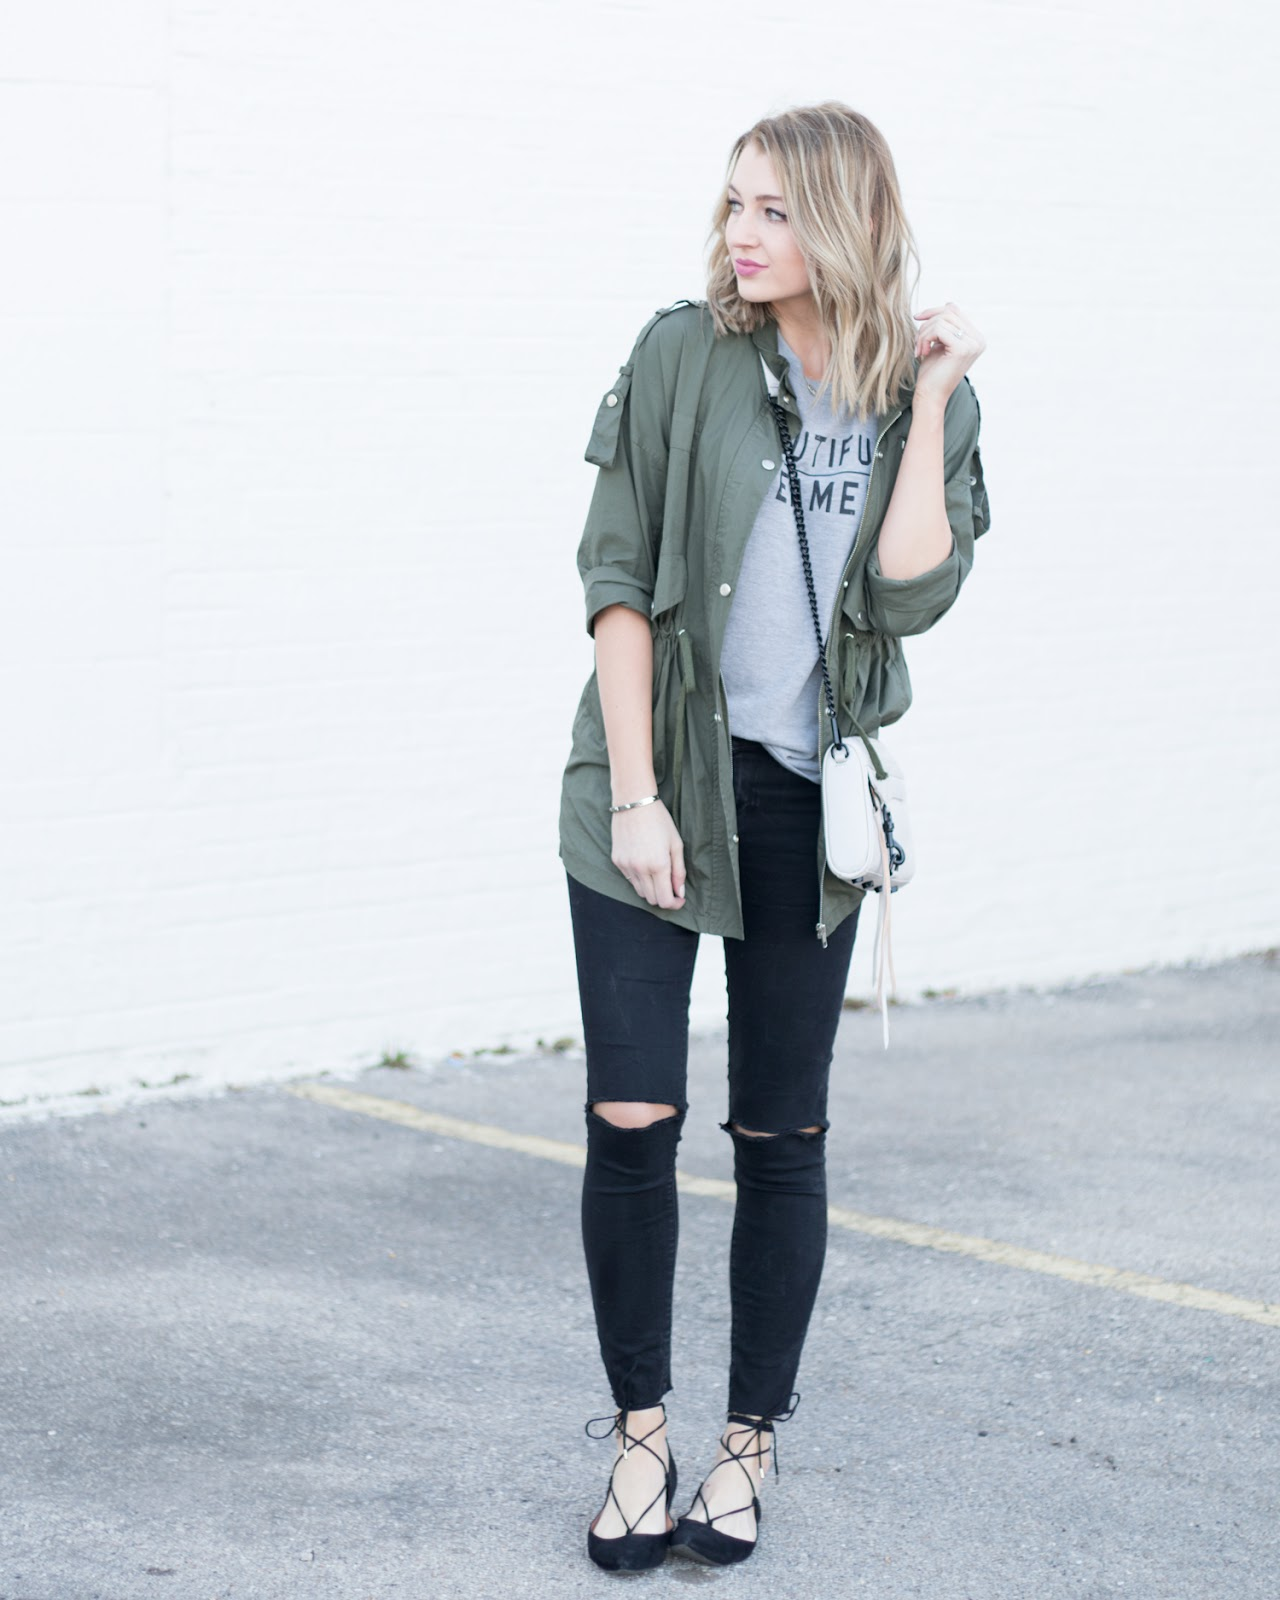 Utility jacket with distressed jeans